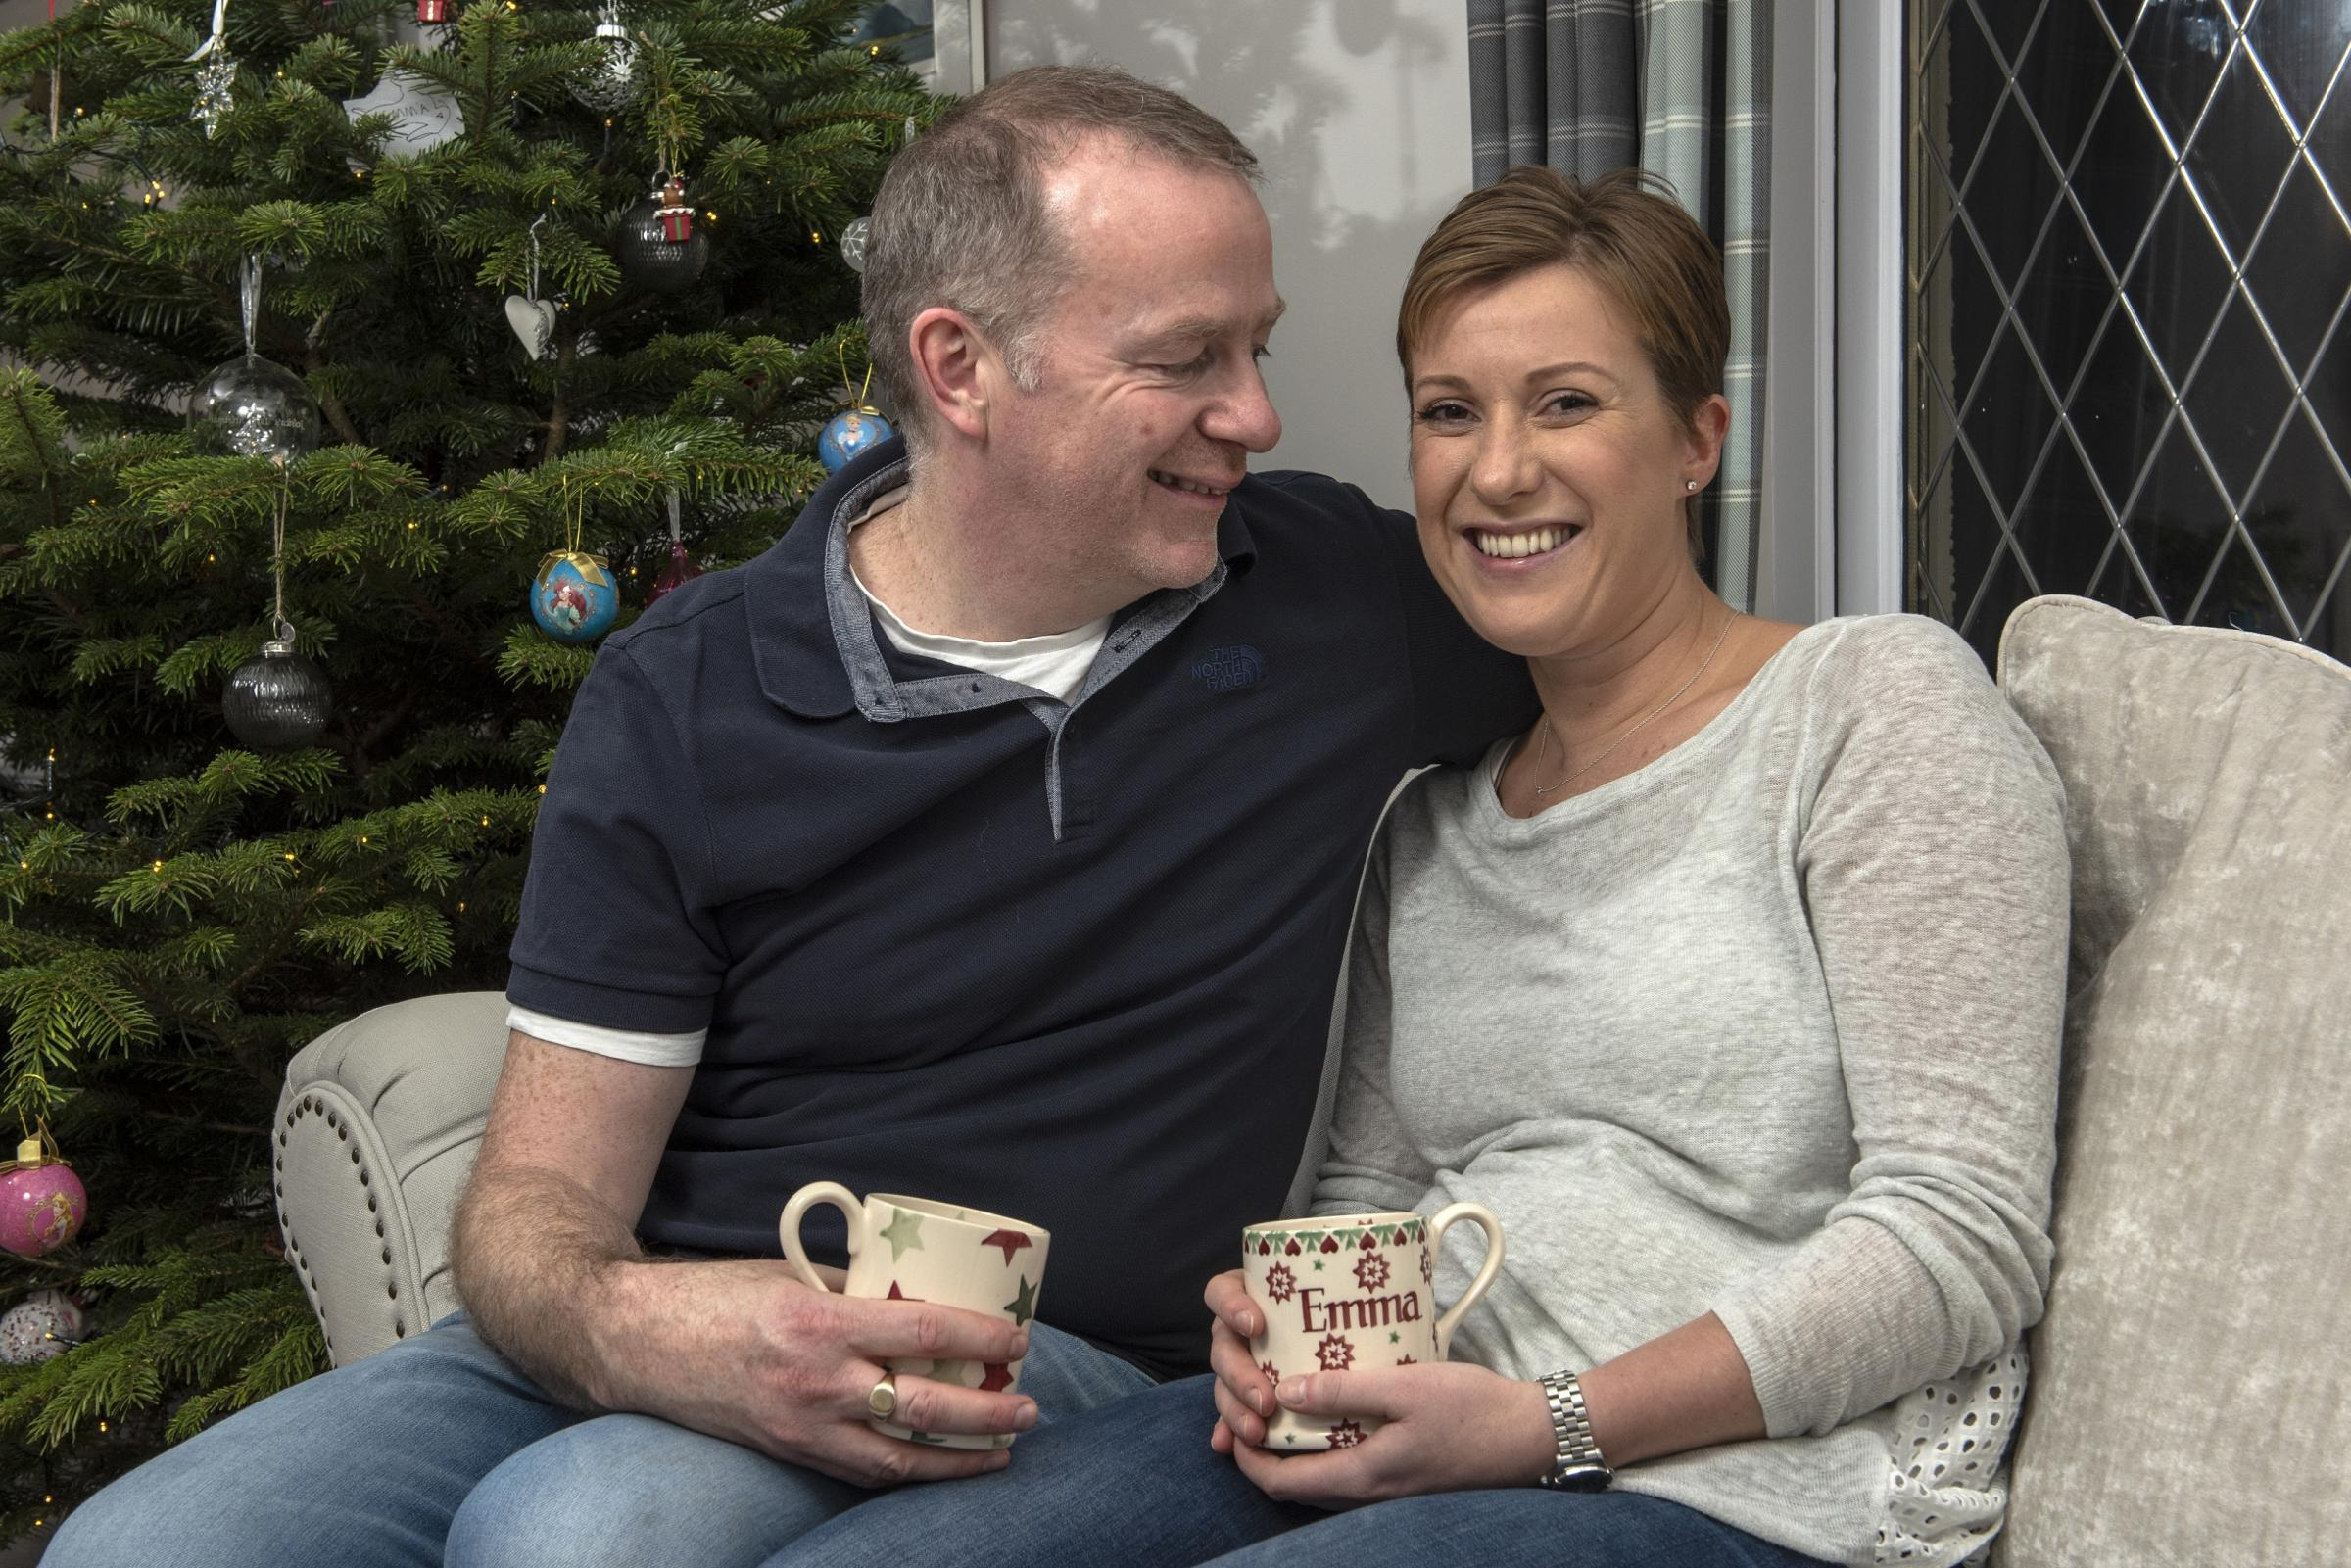 Jonathan Seddon, whose wife Emma was diagnosed with breast cancer in 2017 aged 35, has spoken about what her surviving the disease has meant to him.